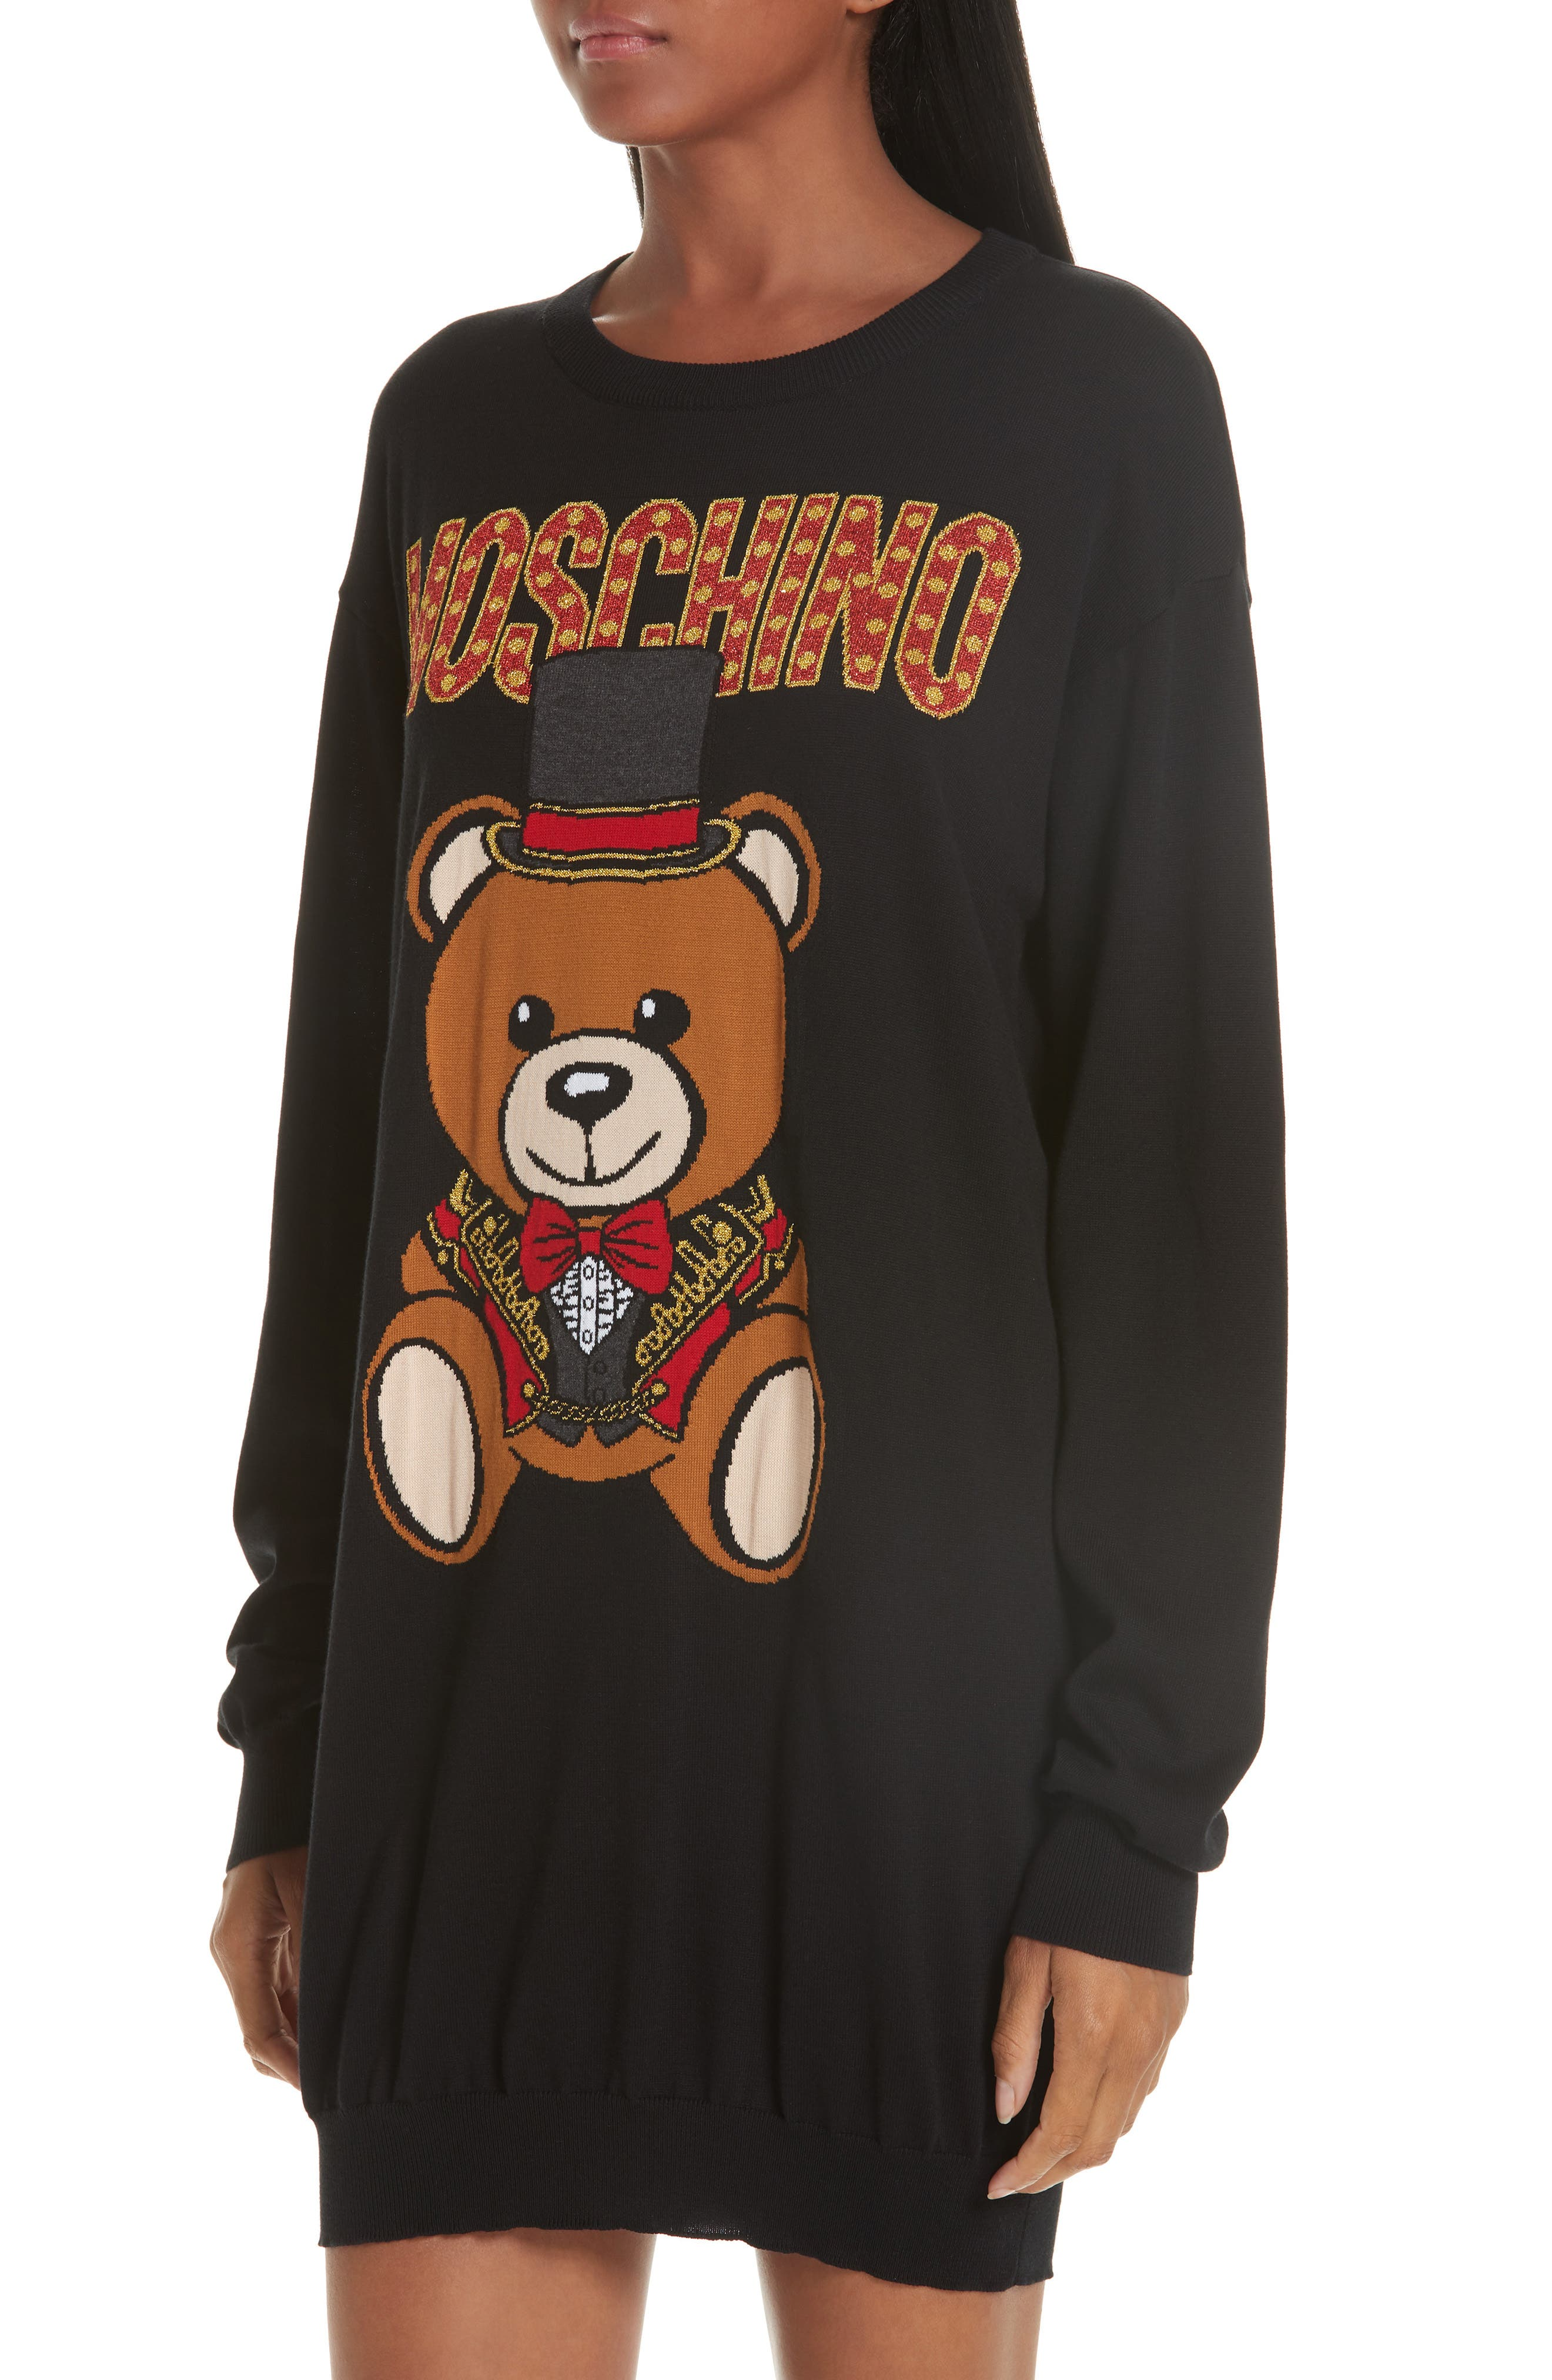 MOSCHINO, Circus Teddy Sweater Dress, Alternate thumbnail 4, color, BLACK